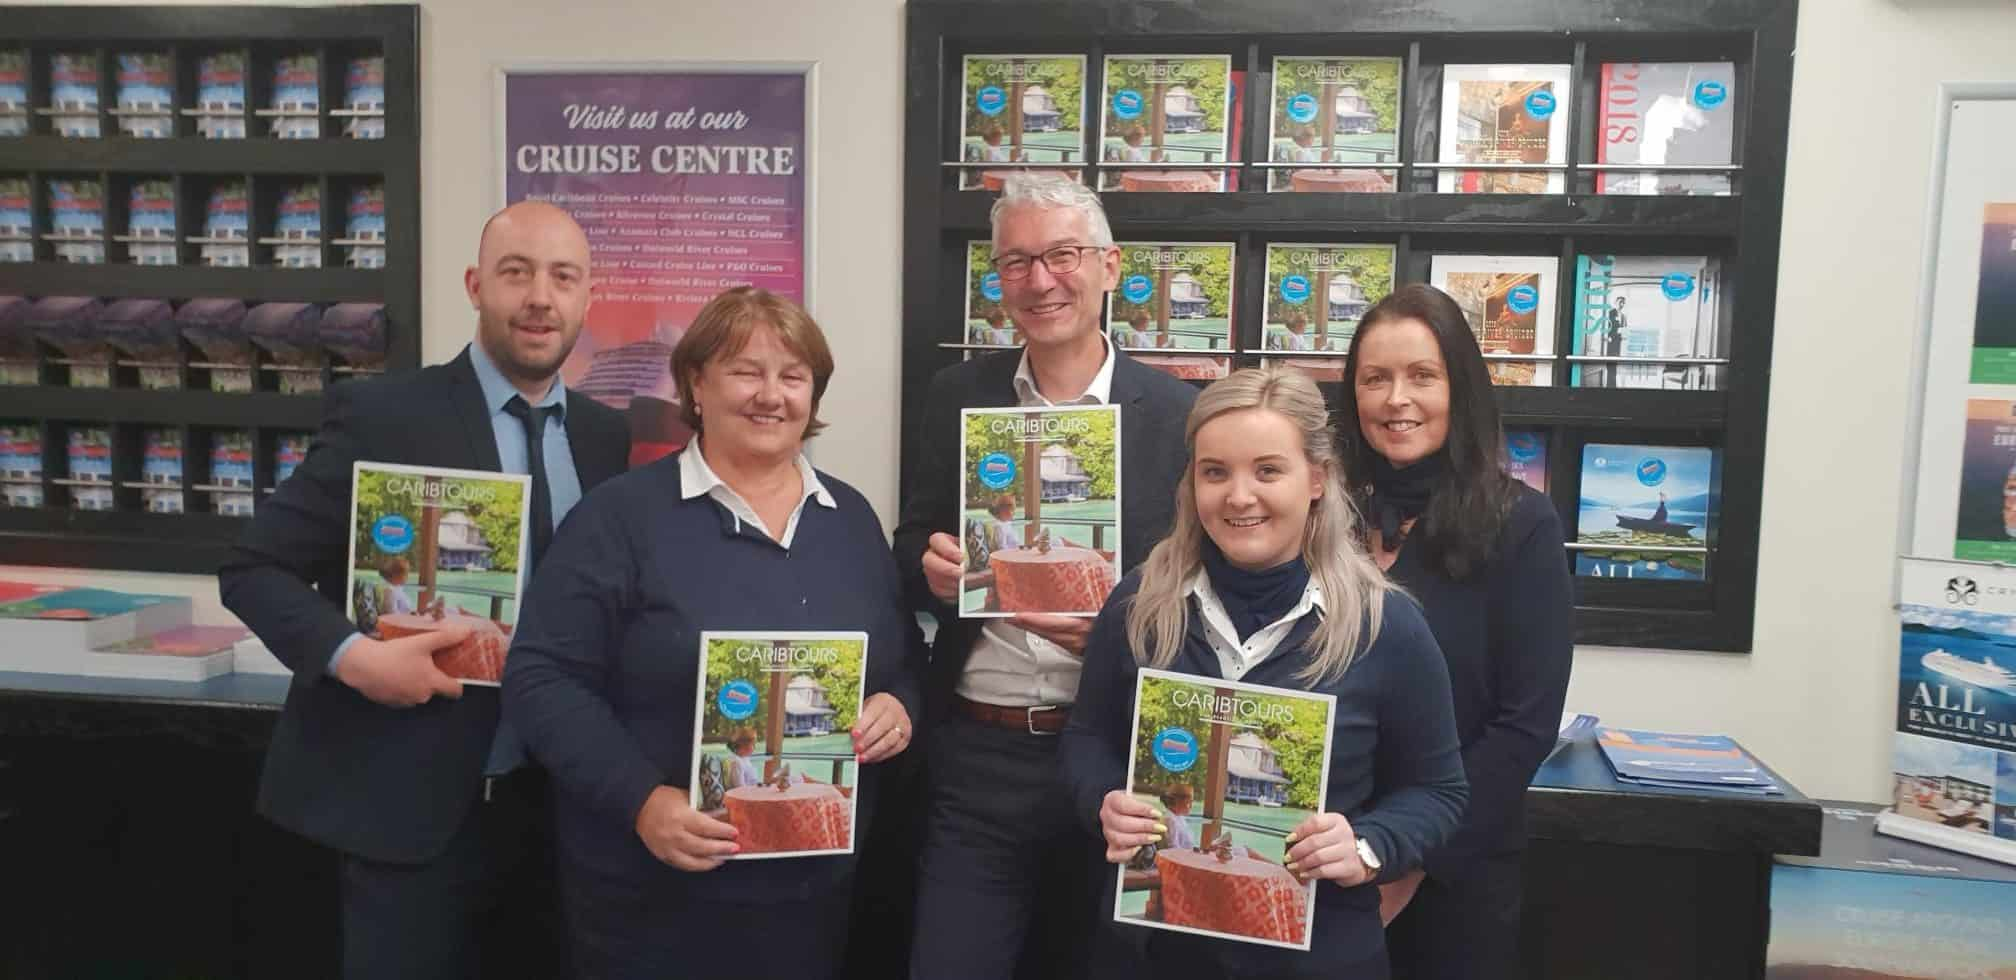 Promoting Caribtours with Strand Travel Waterford